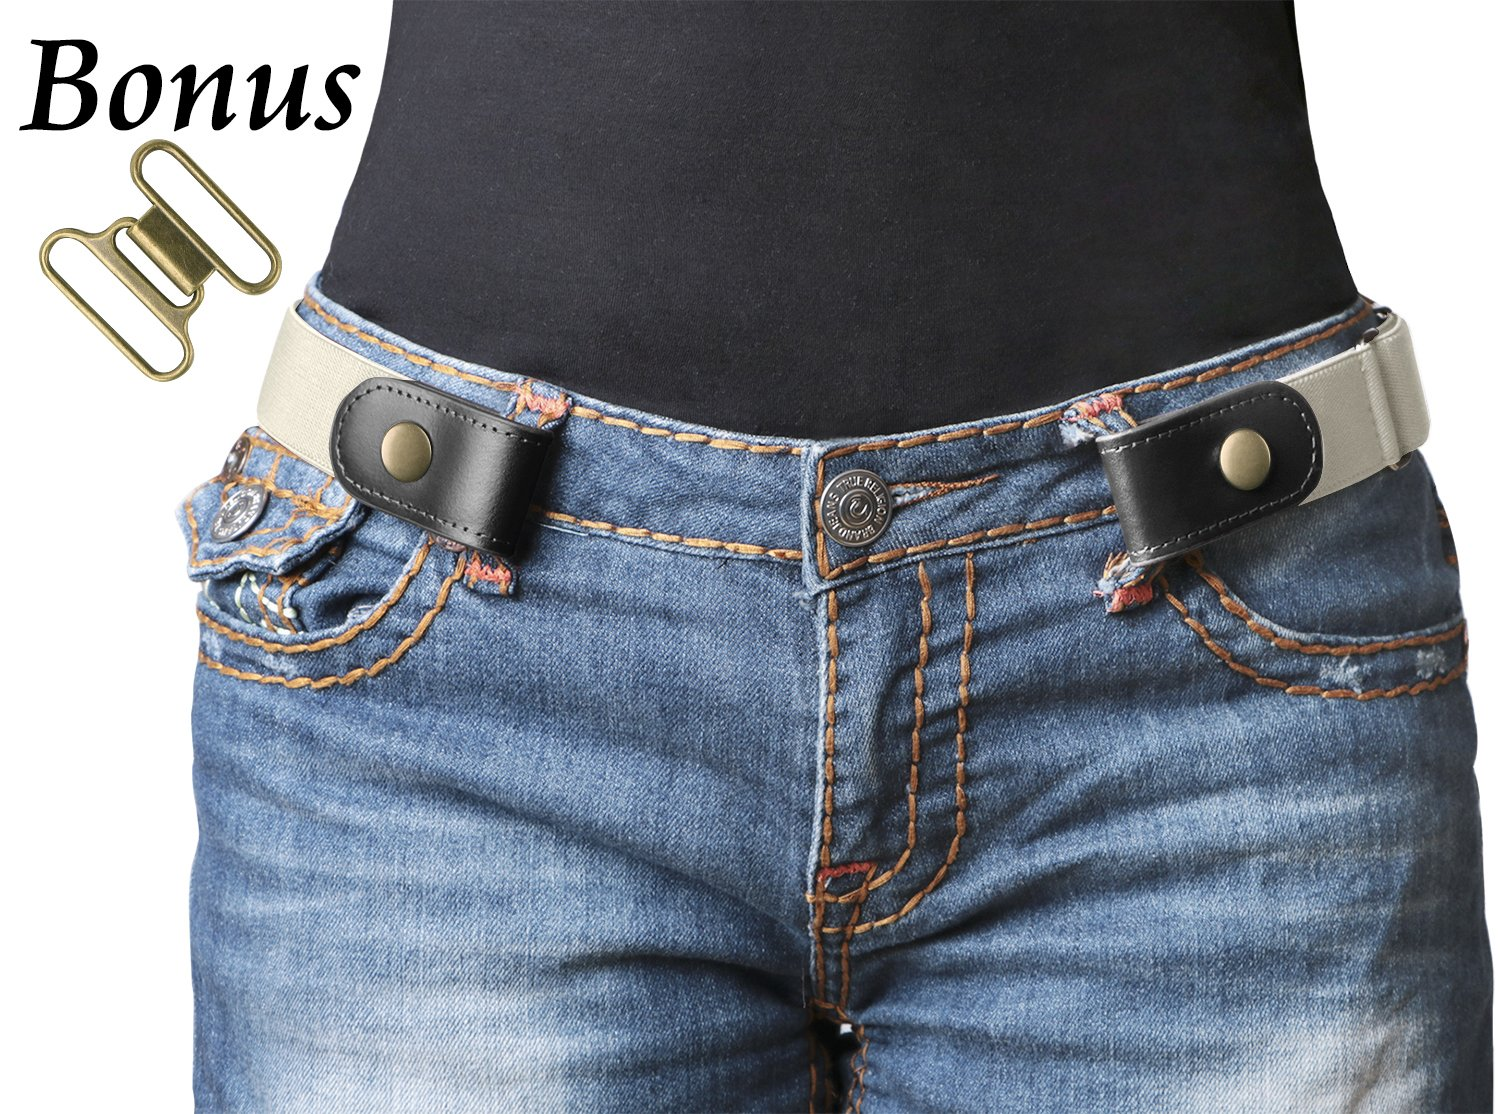 No Buckle Stretch Belt For Women/Men Elastic Waist Belt Up to 48'' for Jeans Pants (Pants Size 24''-36'', e-White) by WERFORU